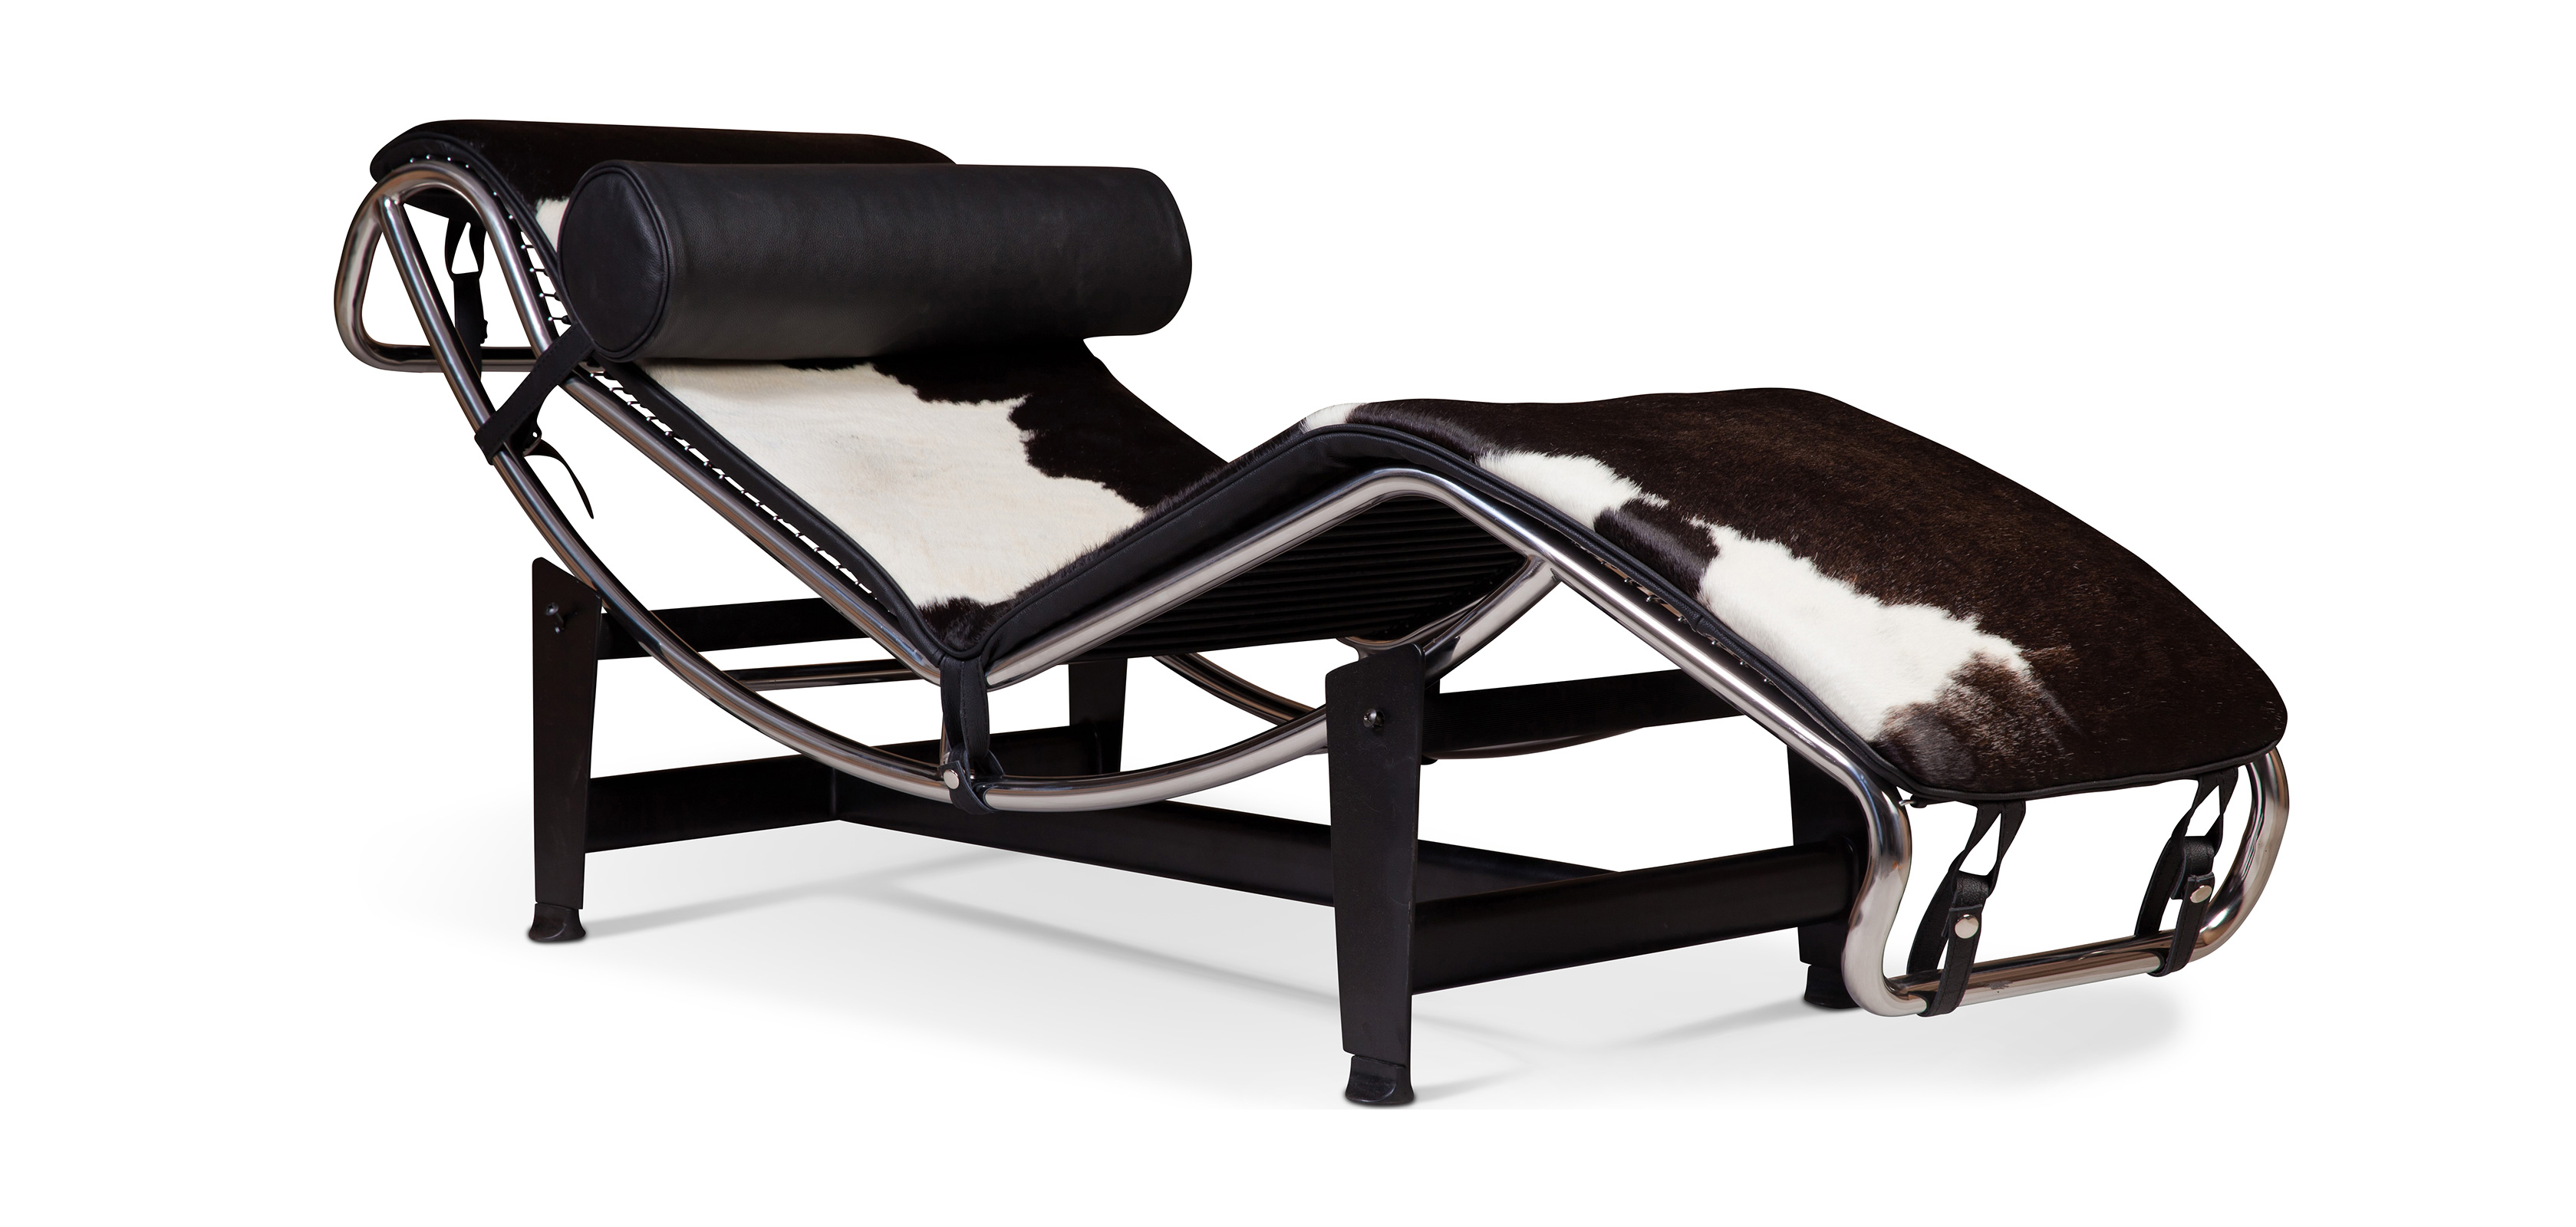 Chaise Longue LC4 Pony Charles Le Corbusier on le corbusier modulor, le corbusier furniture, le corbusier desk, le corbusier club chair, le corbusier table, le corbusier loveseat, le corbusier barcelona, le corbusier art, le corbusier bed, le corbusier lounge, le corbusier ville radieuse, le corbusier stool, le corbusier chair dimensions, le corbusier bench, le corbusier armchair, le corbusier ville contemporaine, le corbusier lamp, le corbusier recliner, le corbusier books, le corbusier architecture,